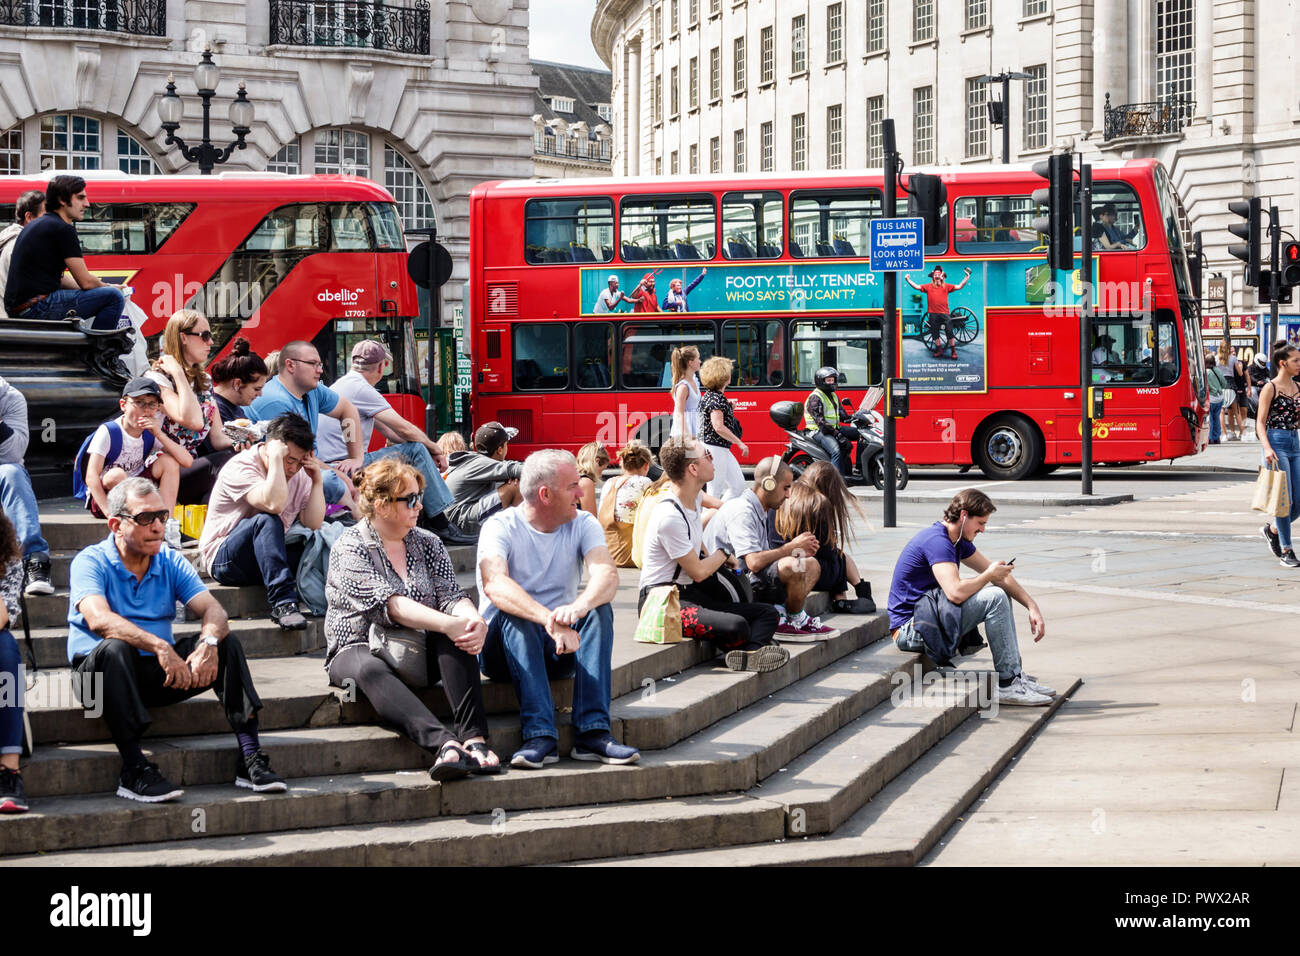 London England United Kingdom Great Britain West End Piccadilly Circus St Jamess Shaftesbury Memorial Fountain Steps Man Woman Boy Sitting Red Doubl